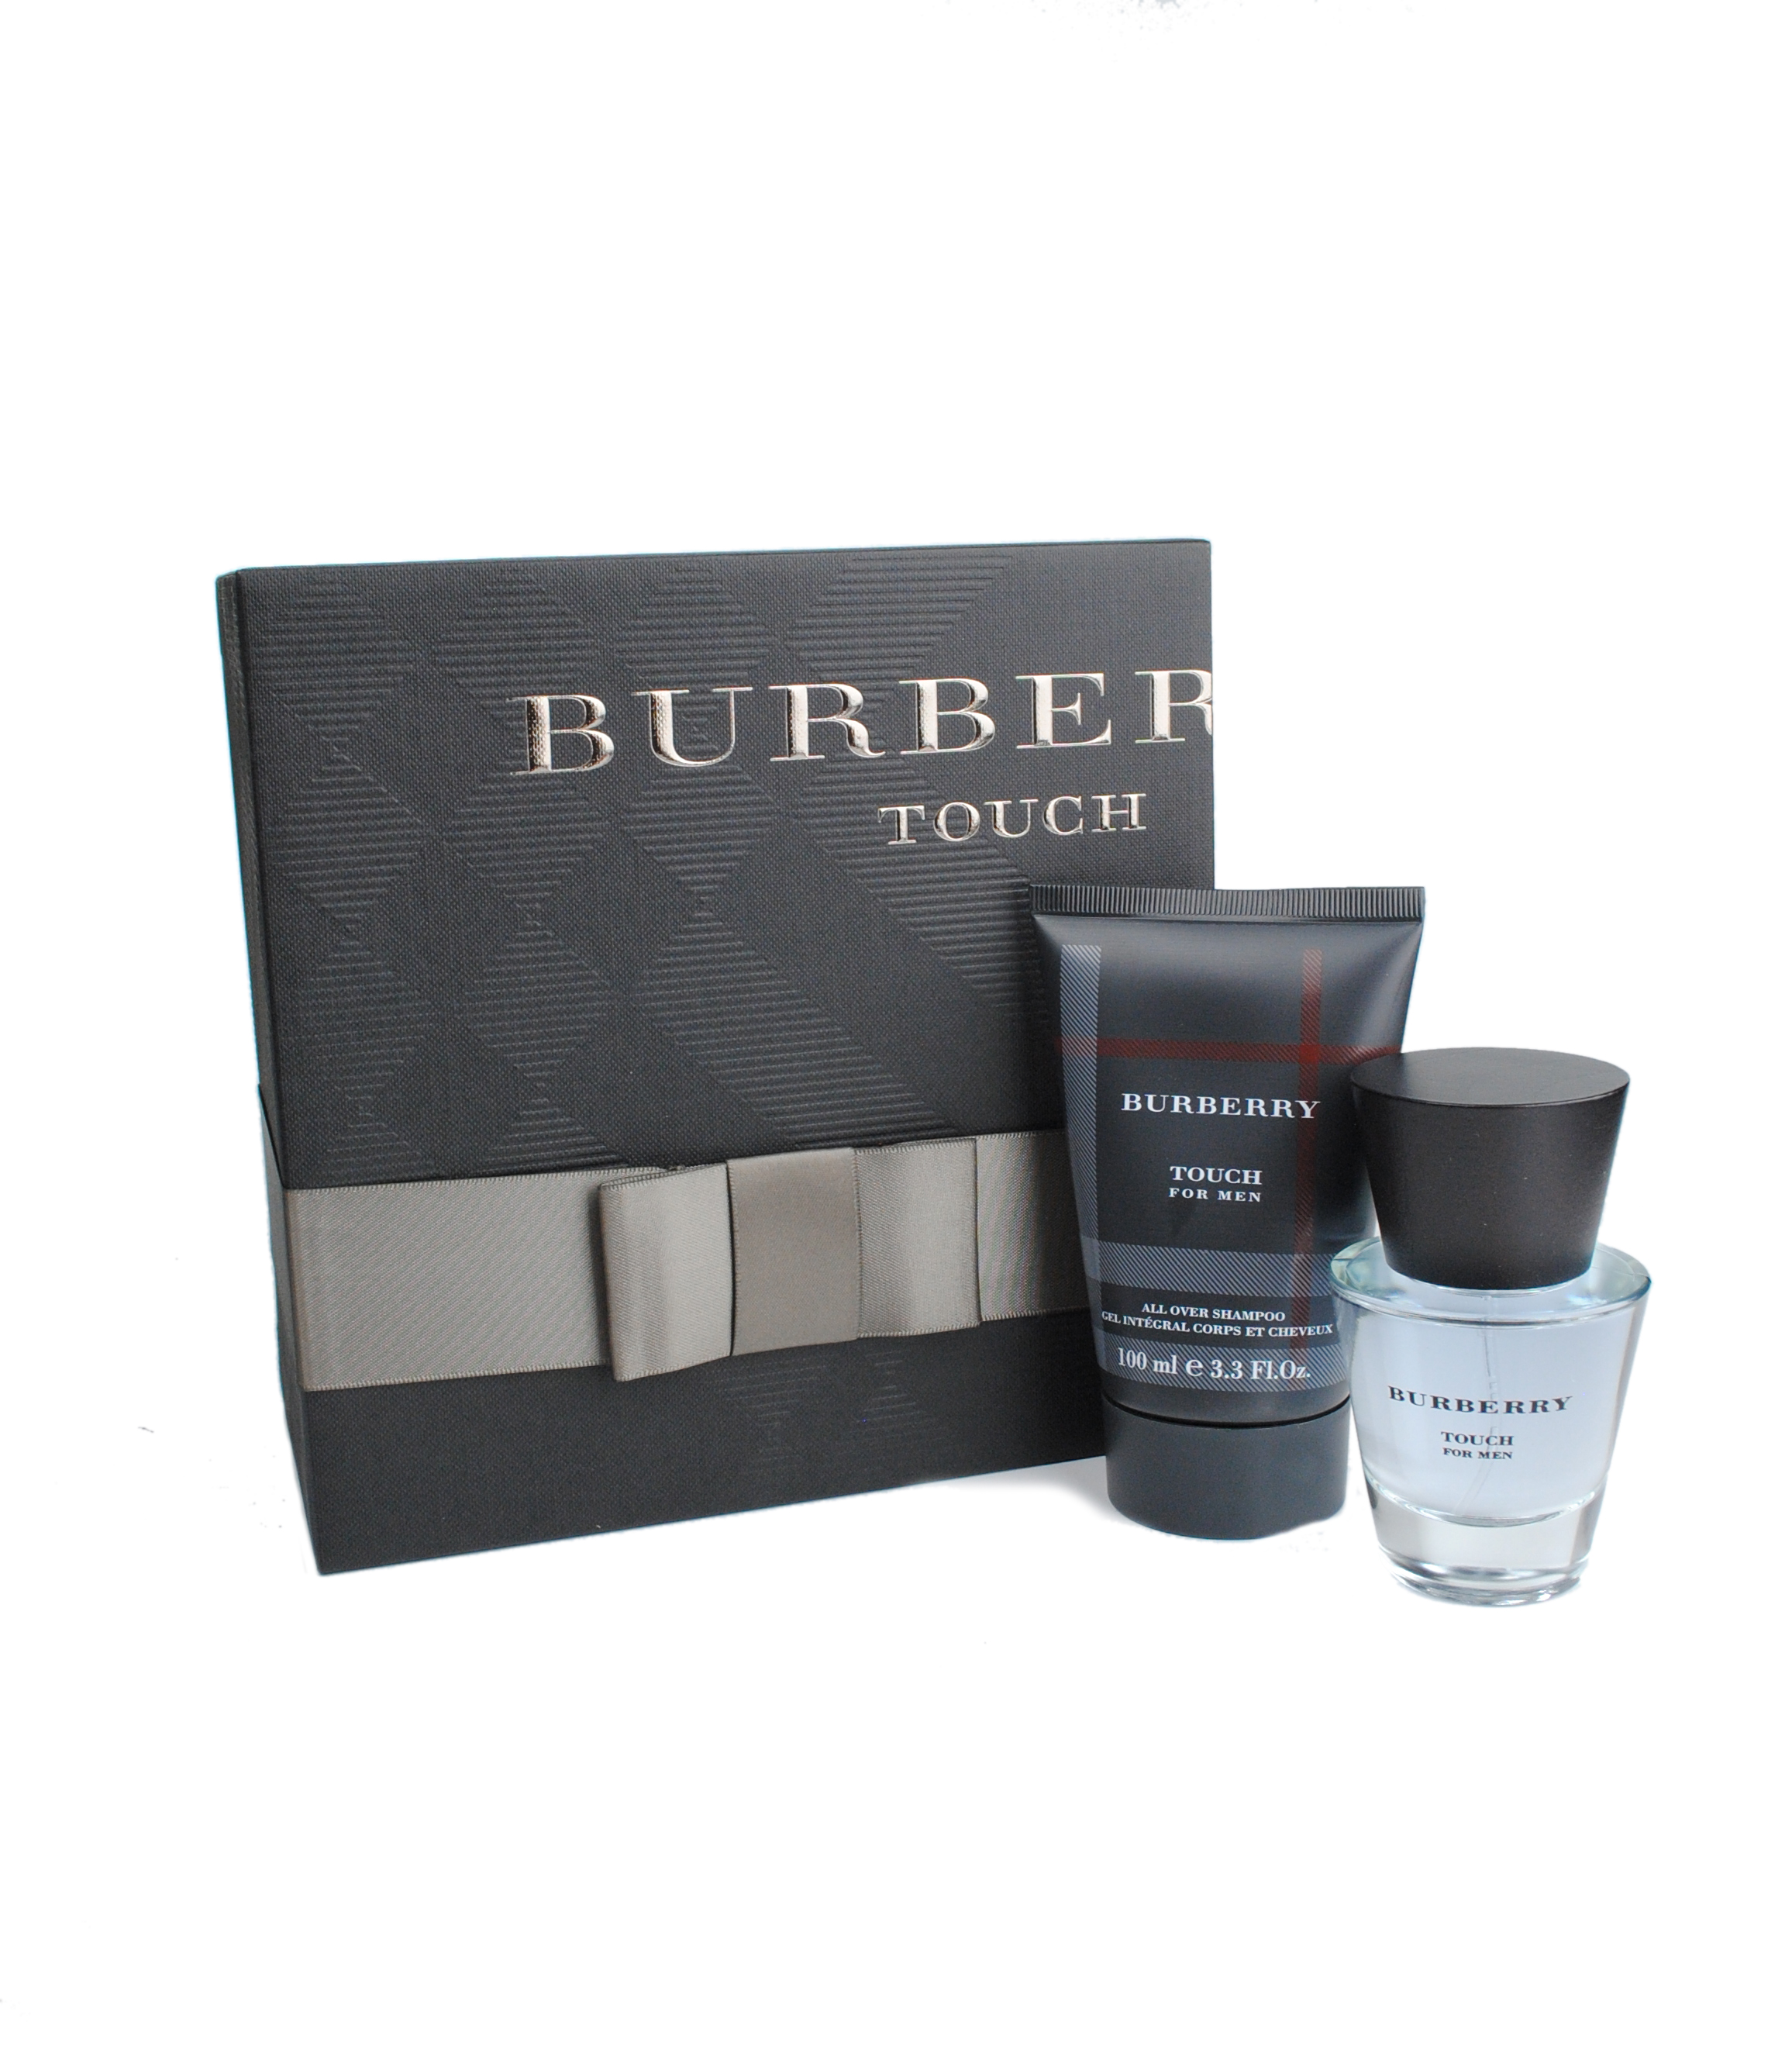 Burberry Touch for Men Gift Set, 2pc